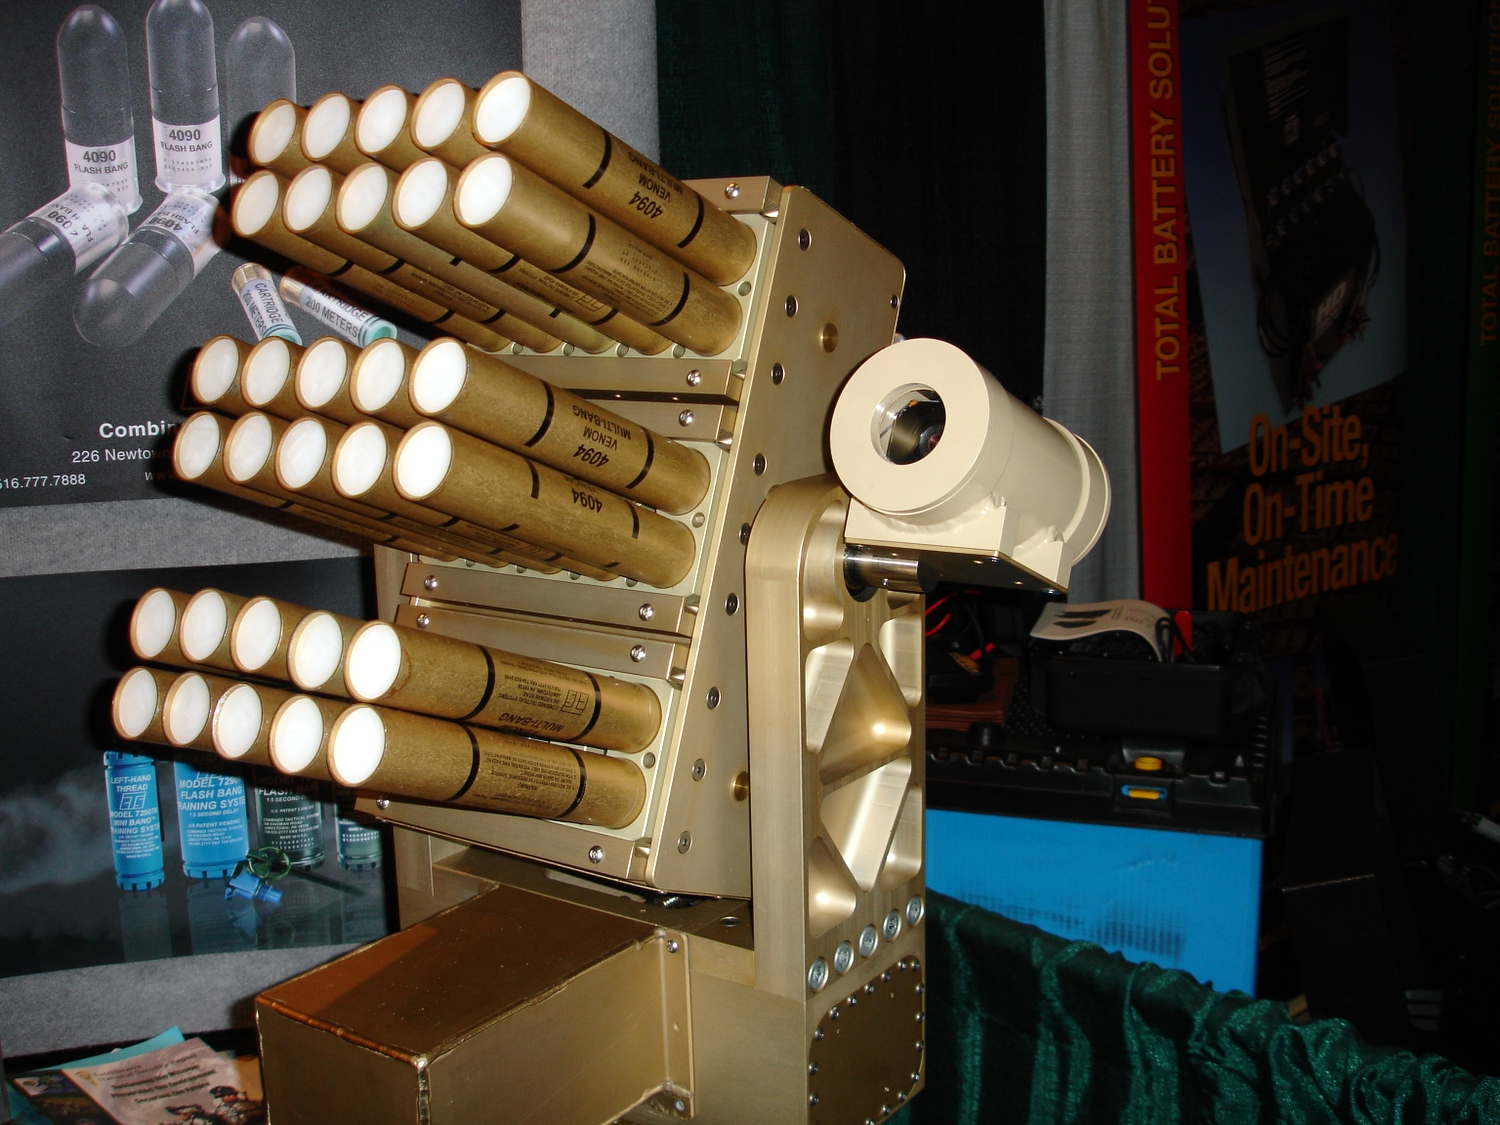 <!  :en  >VENOM Less Lethal 40mm Munitions Launcher for Urban Warfare Operations<!  :  >